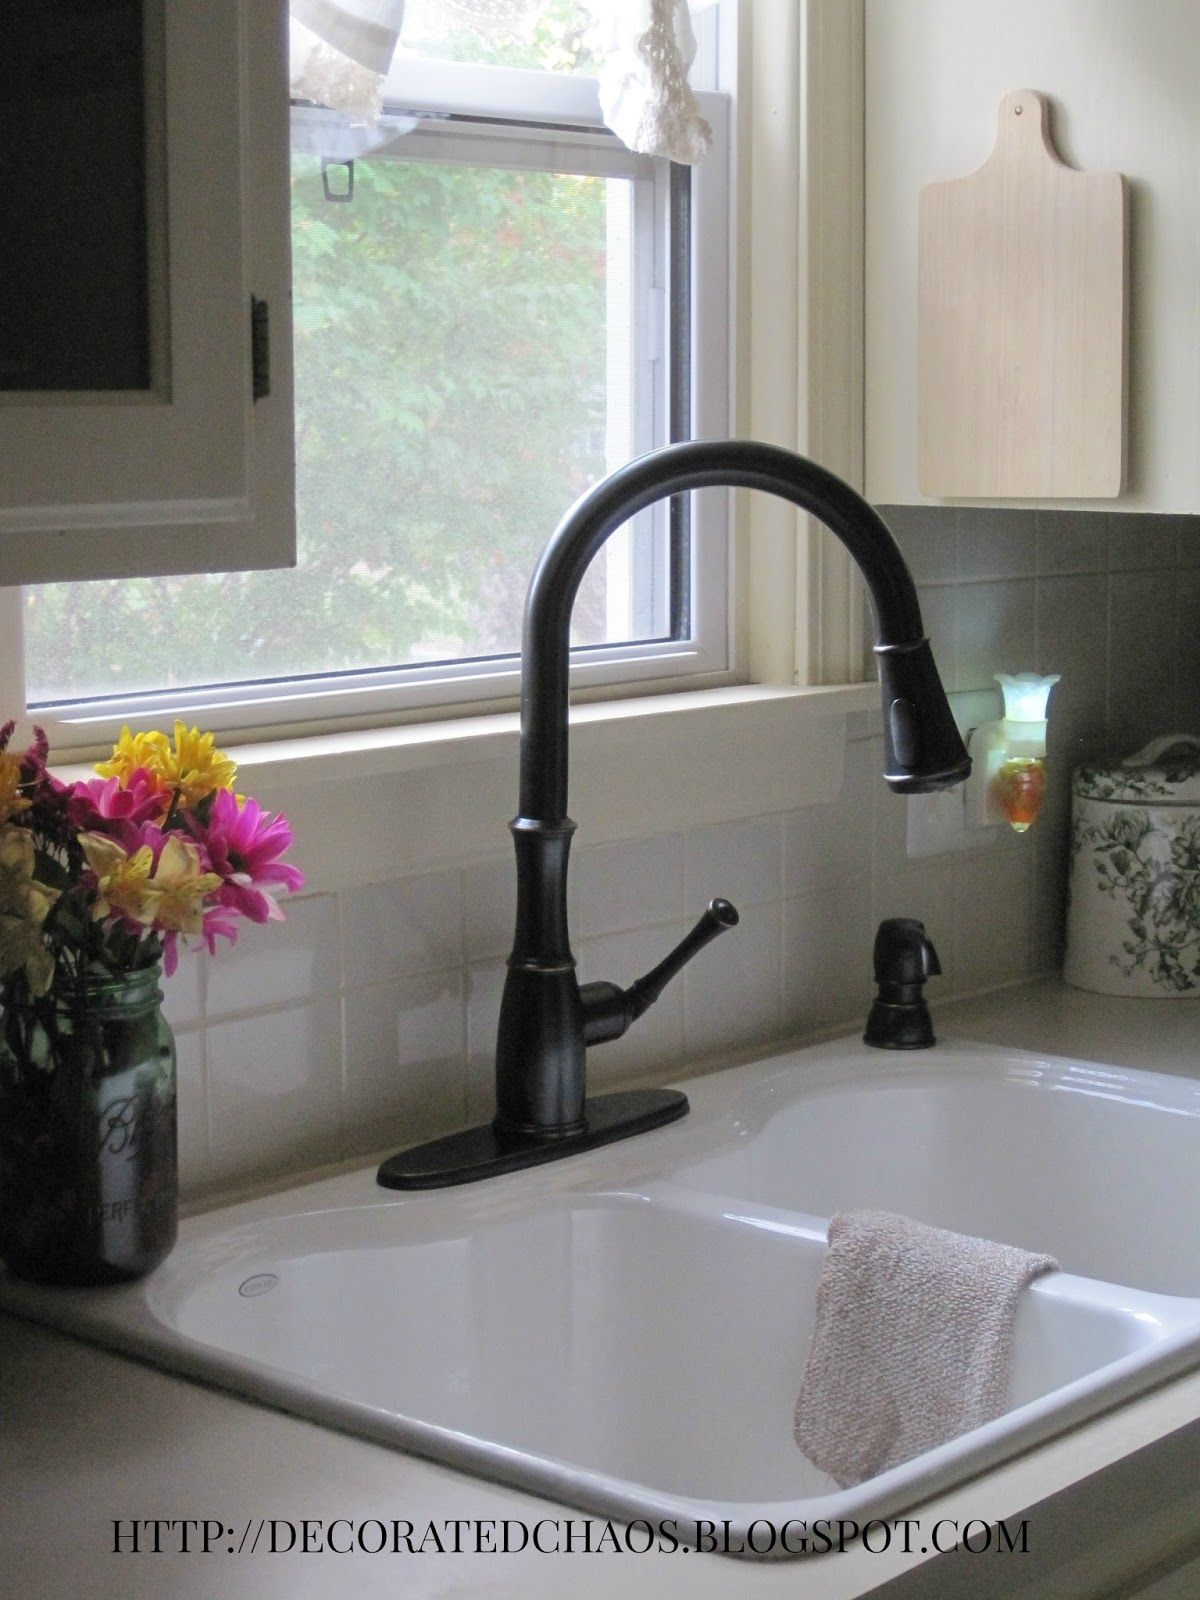 white kitchen faucet appliance colors decorated chaos new pfister in tuscan bronze and cast iron sink